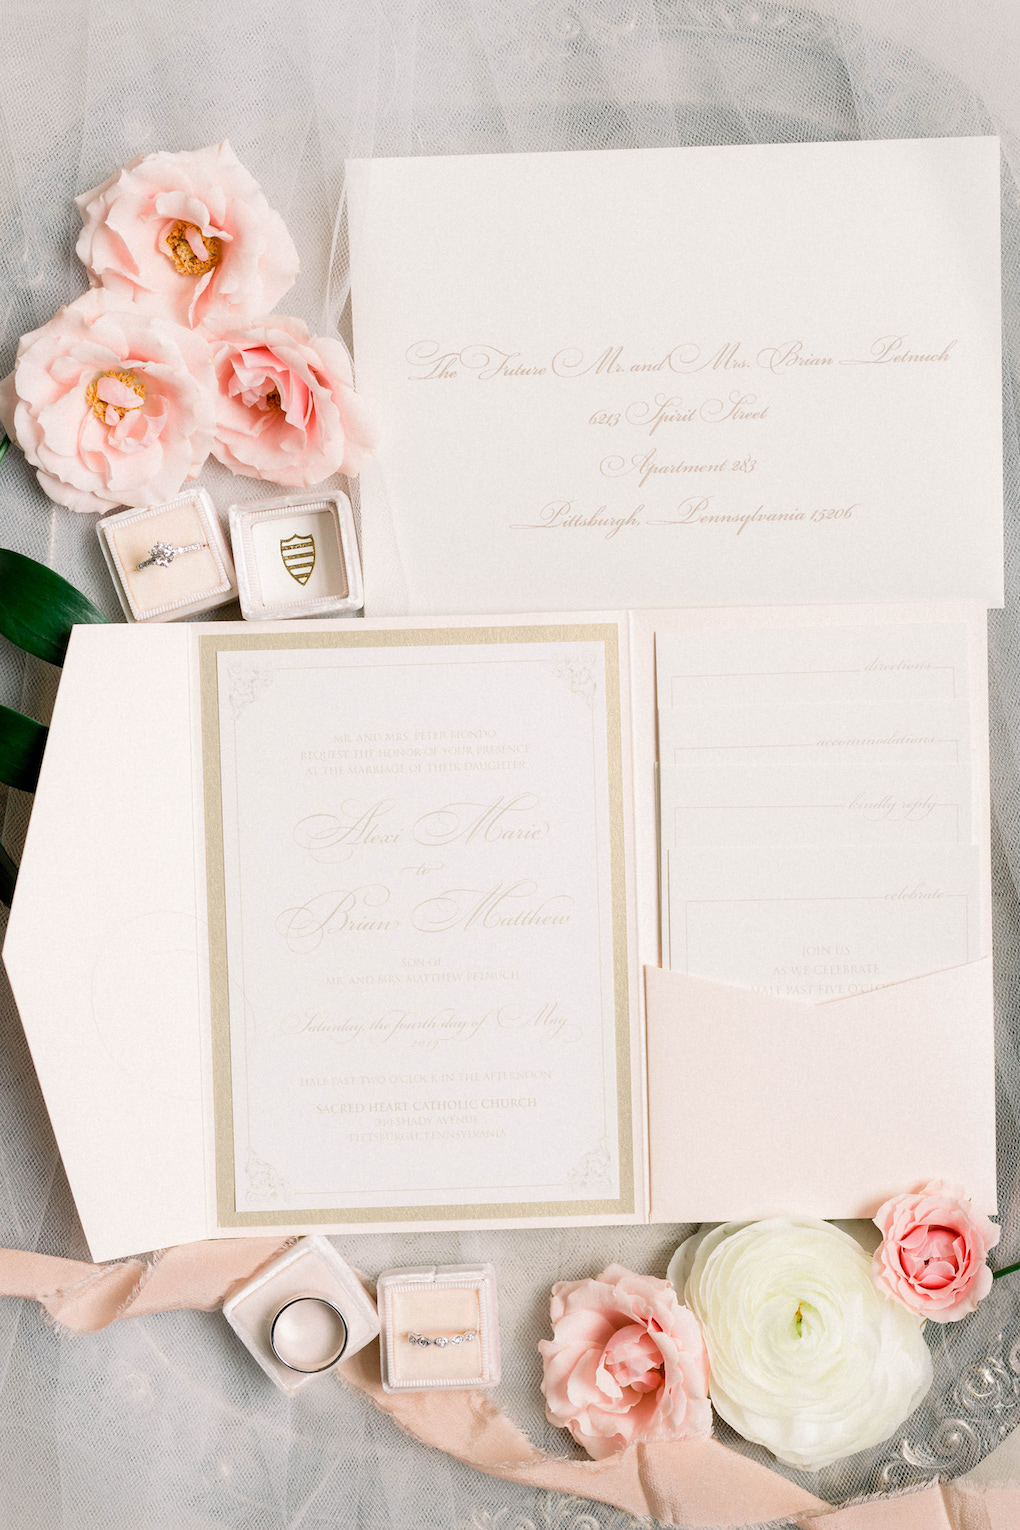 Wedding Invitations & Stationery: Romantic Fairytale wedding at the Omni William Penn in Pittsburgh, PA planned by Exhale Events. Find more wedding inspiration at exhale-events.com!